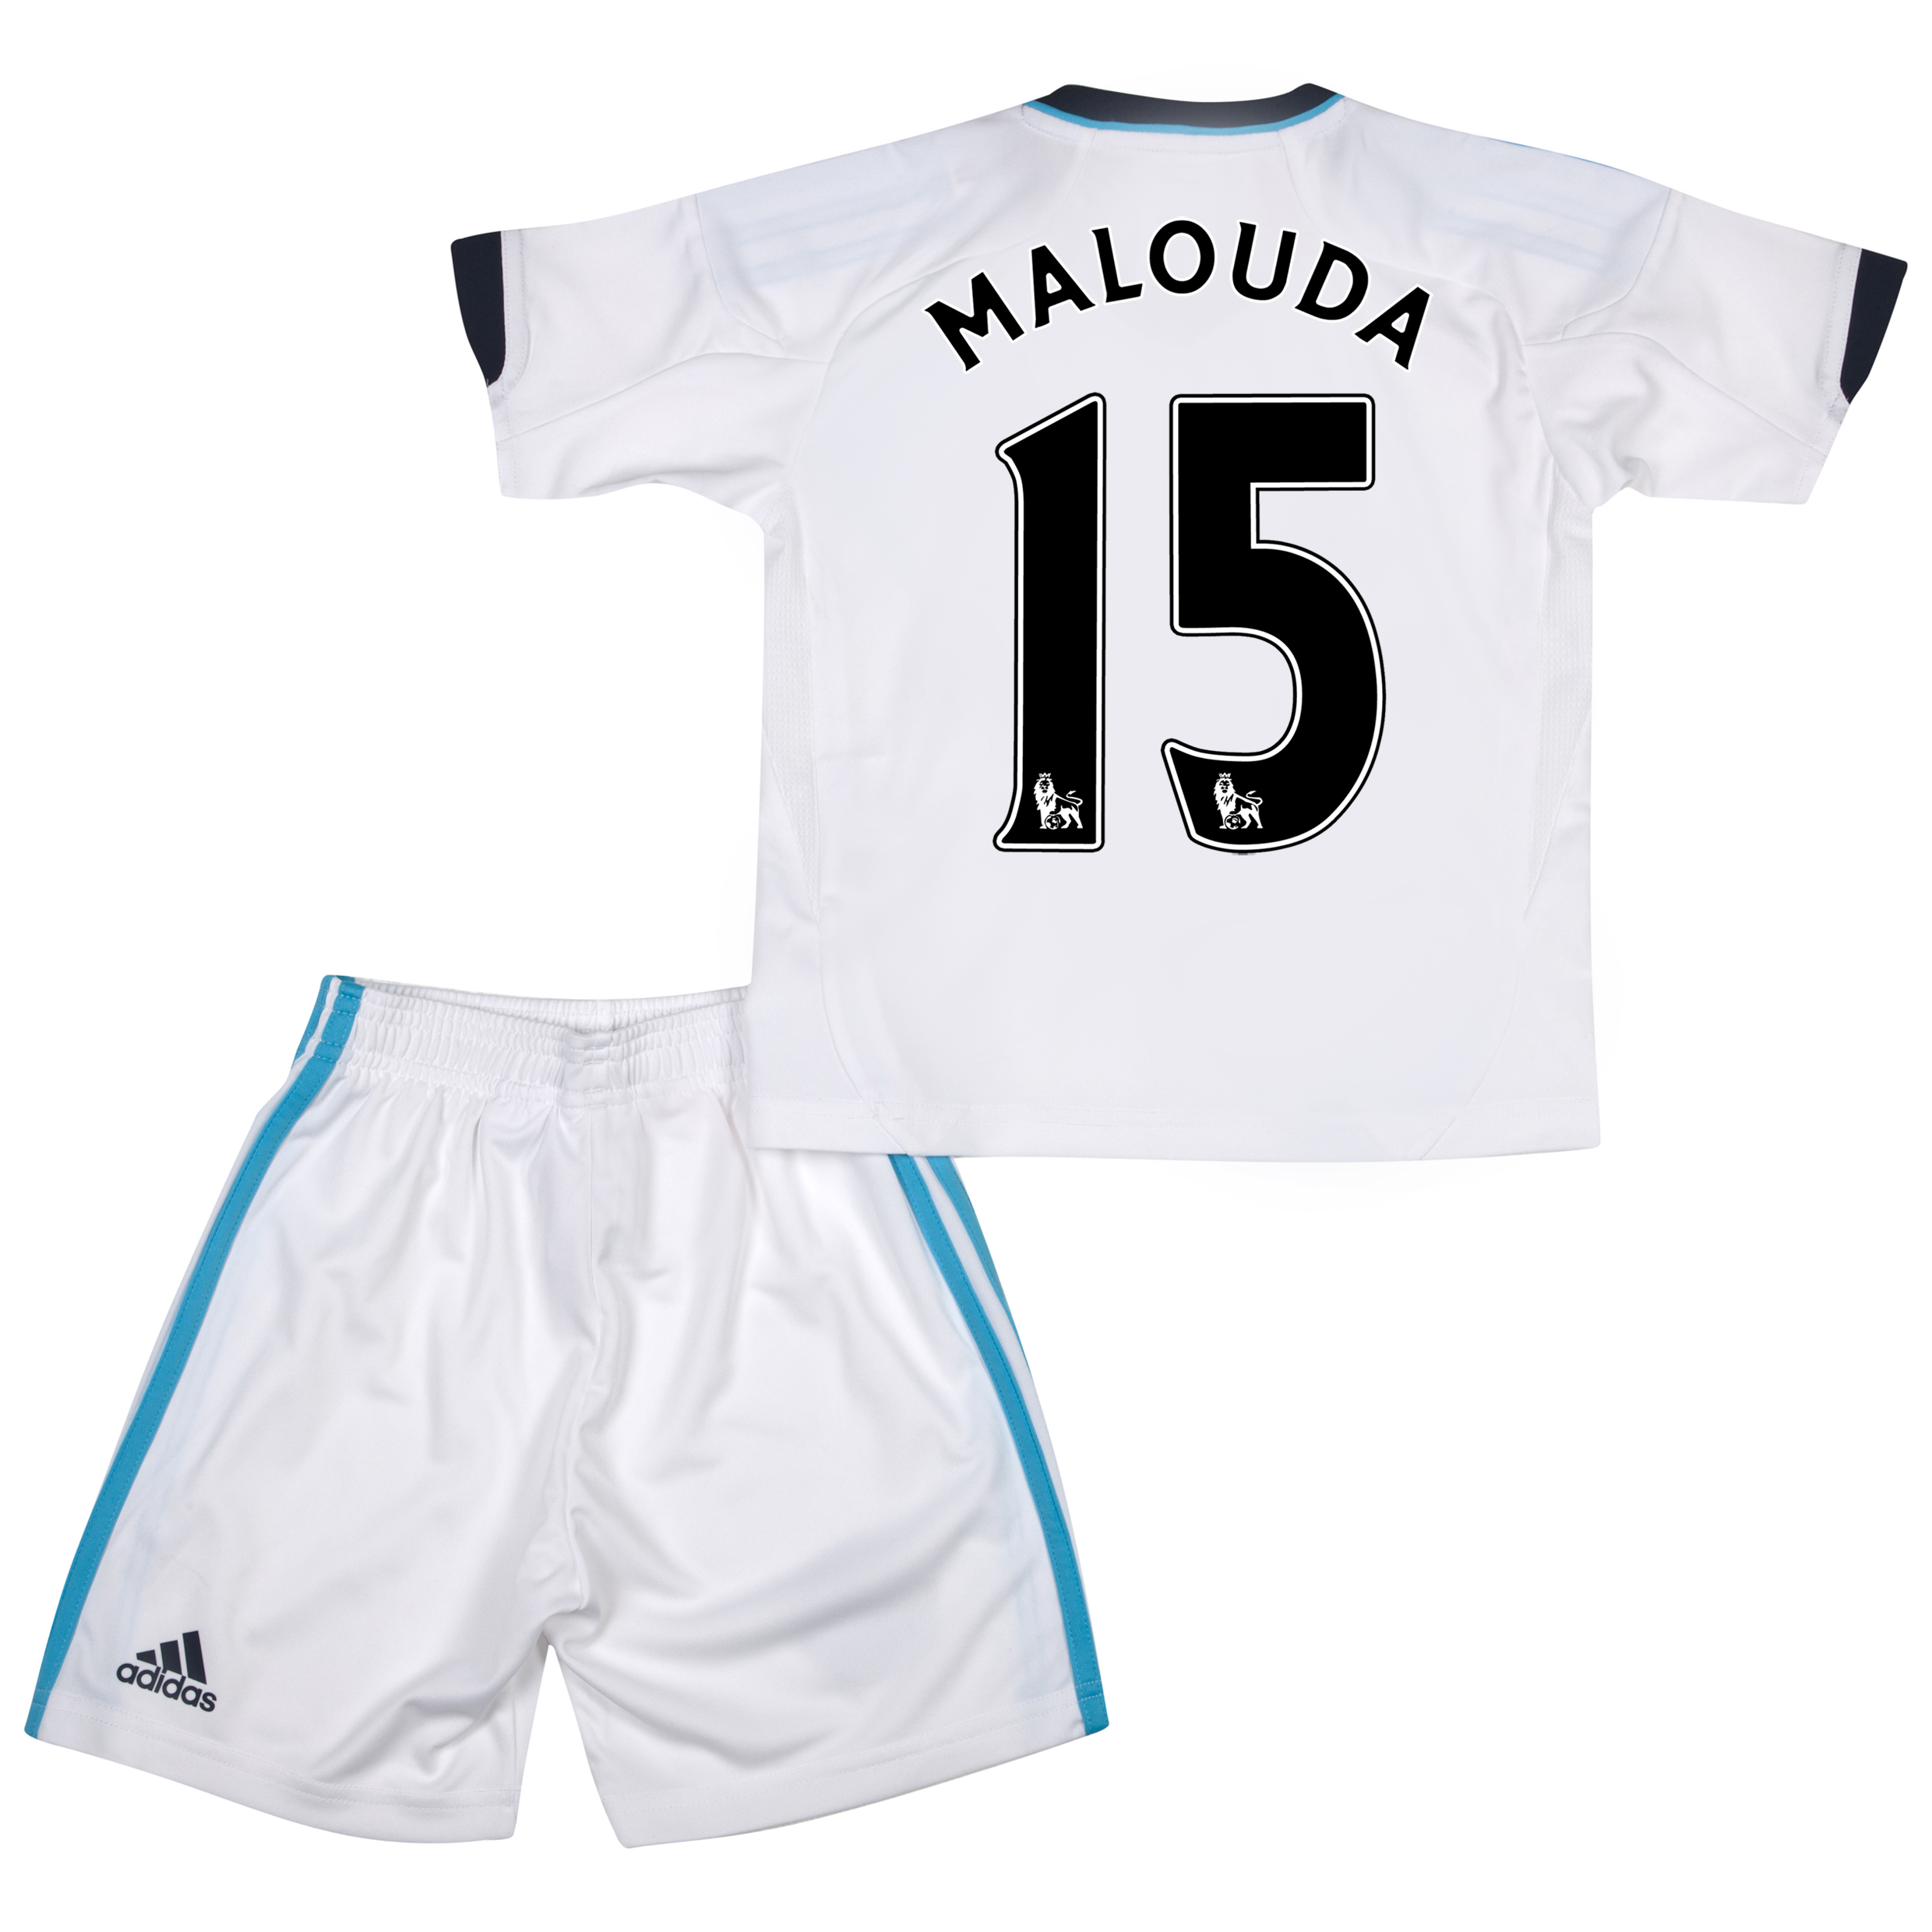 Chelsea Away Mini Kit 2012/13 with Malouda 15 printing